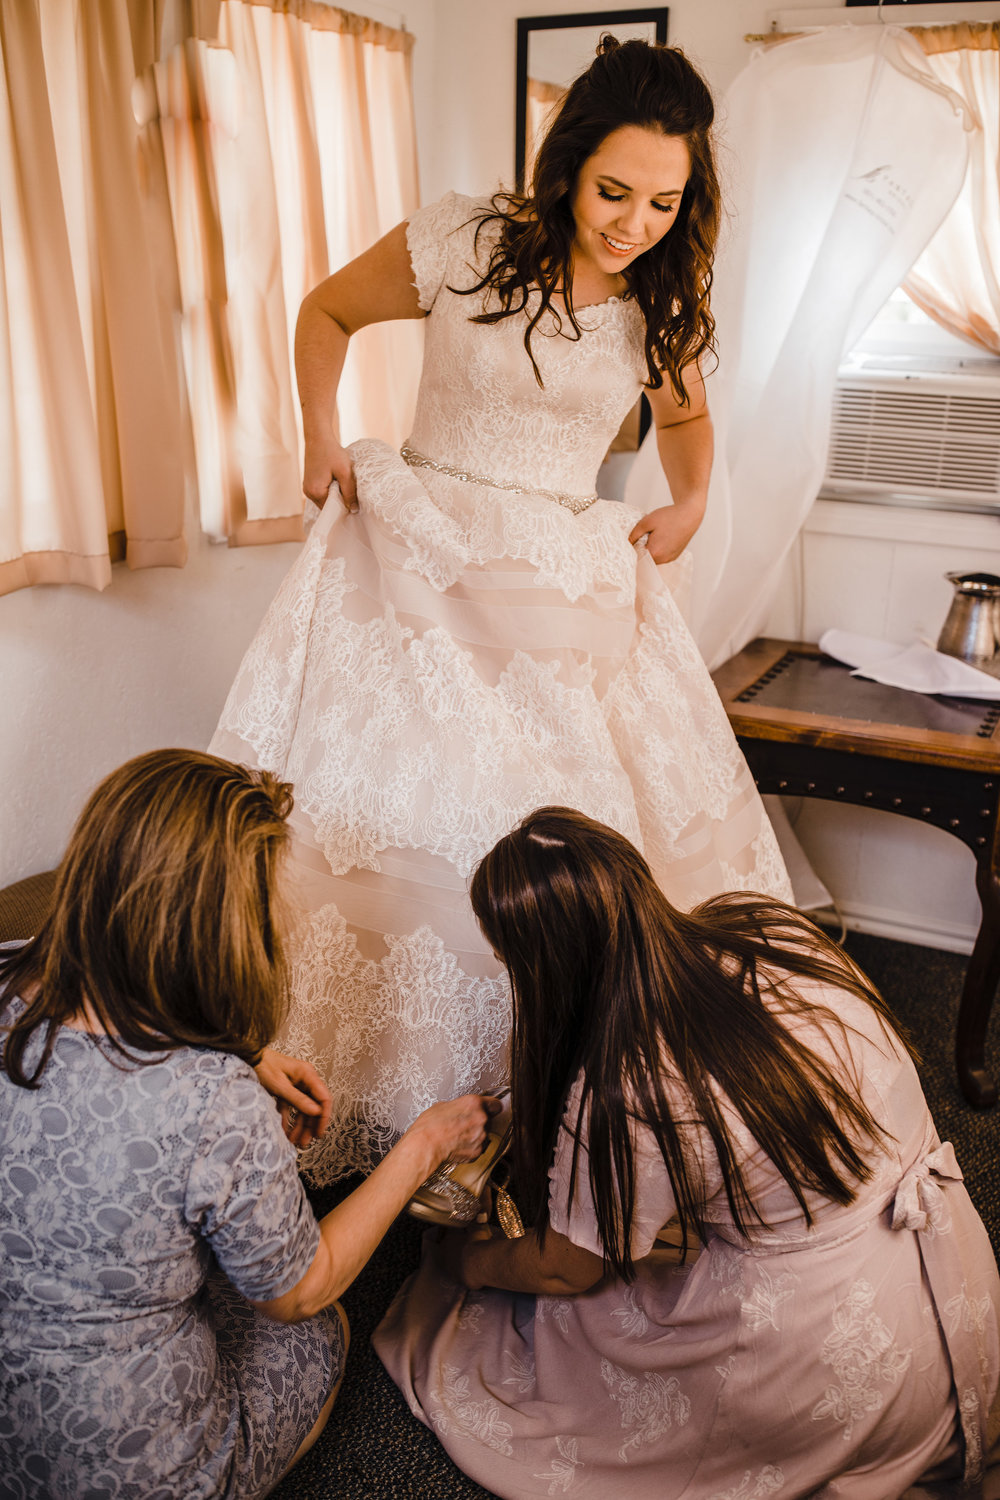 professional wedding photographer in provo utah wedding morning bridal suite getting ready